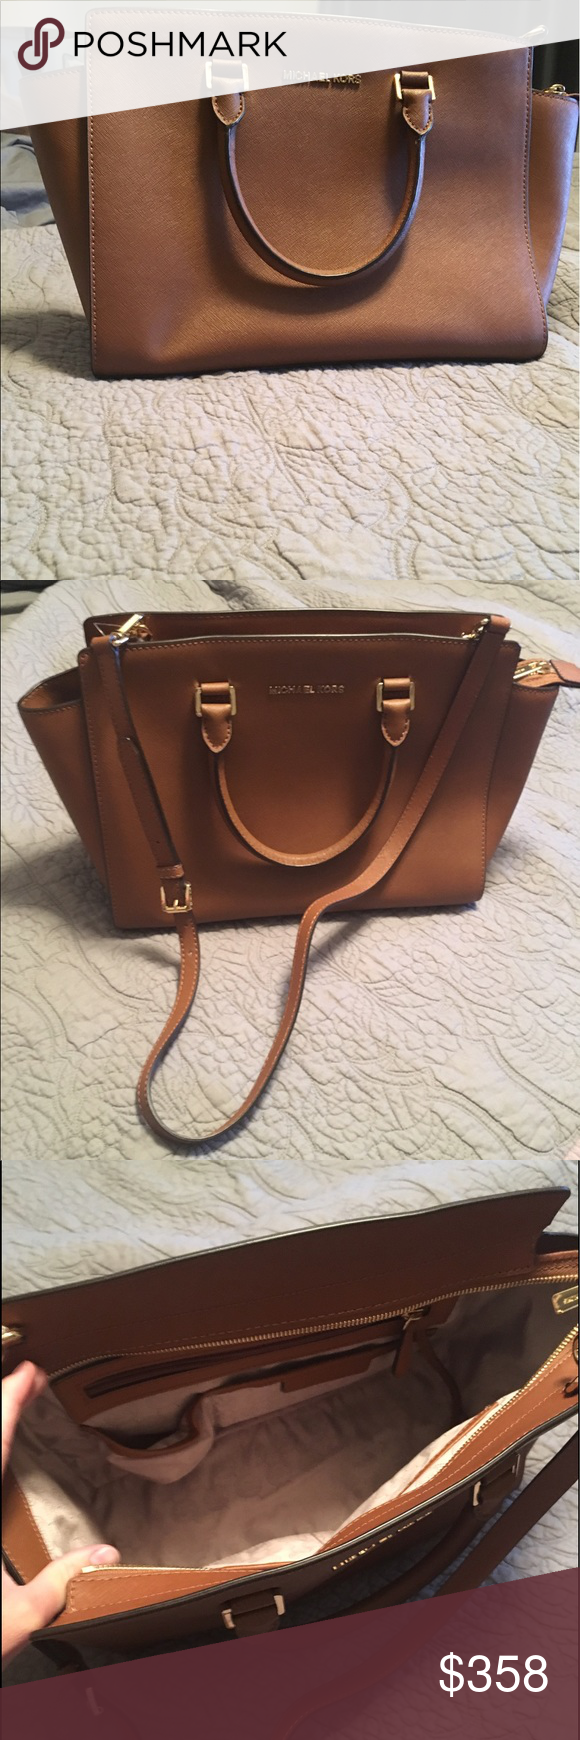 245add6ce2 Michael Kors Purse Brand new, never been used MK purse! Comes with dust bag!  KORS Michael Kors Bags Shoulder Bags